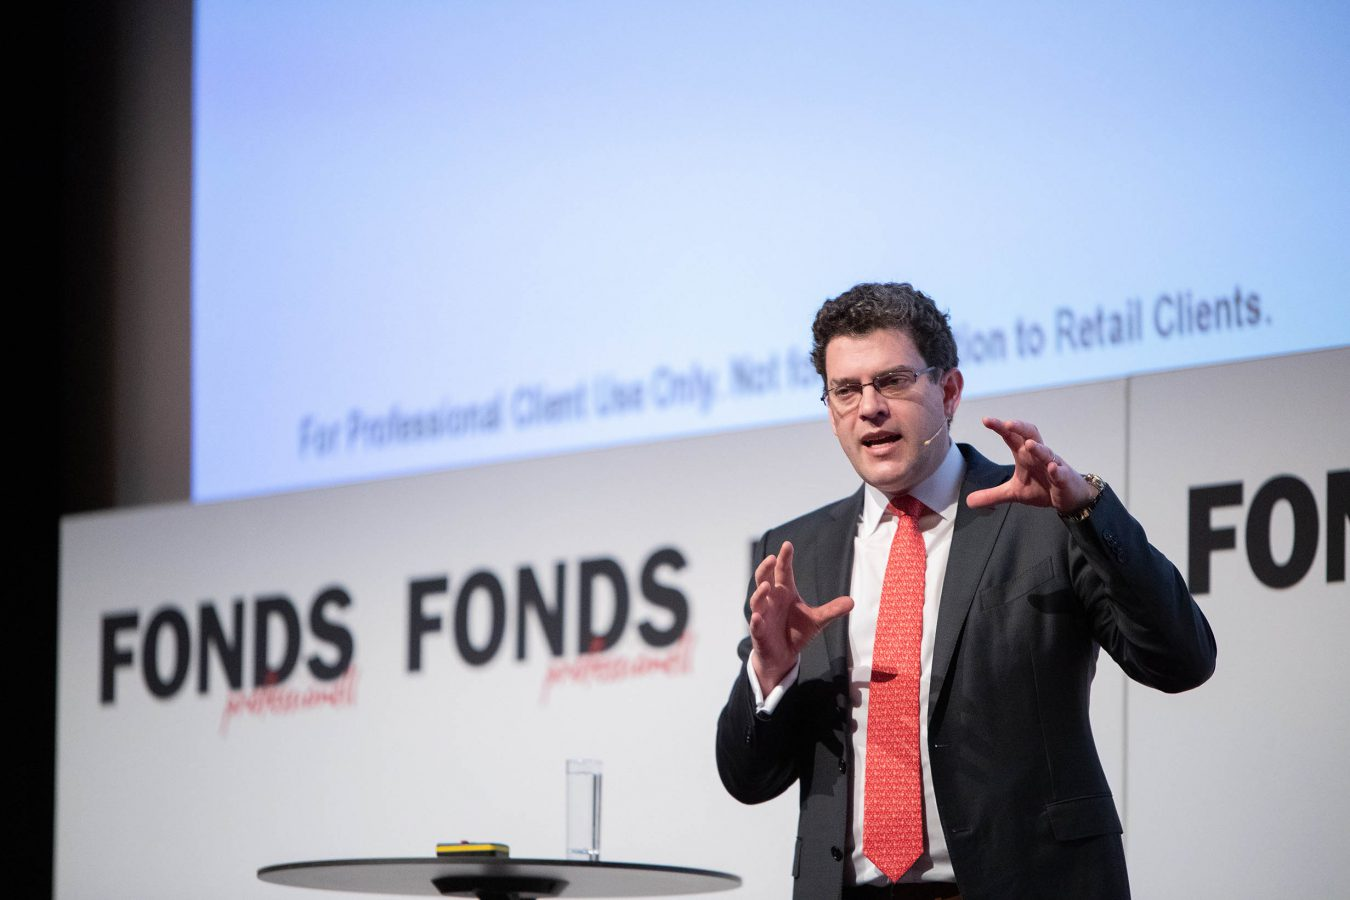 Michael Hasenstab, Kongress, Vortrag, Mannheim, Event, Franklin Templeton